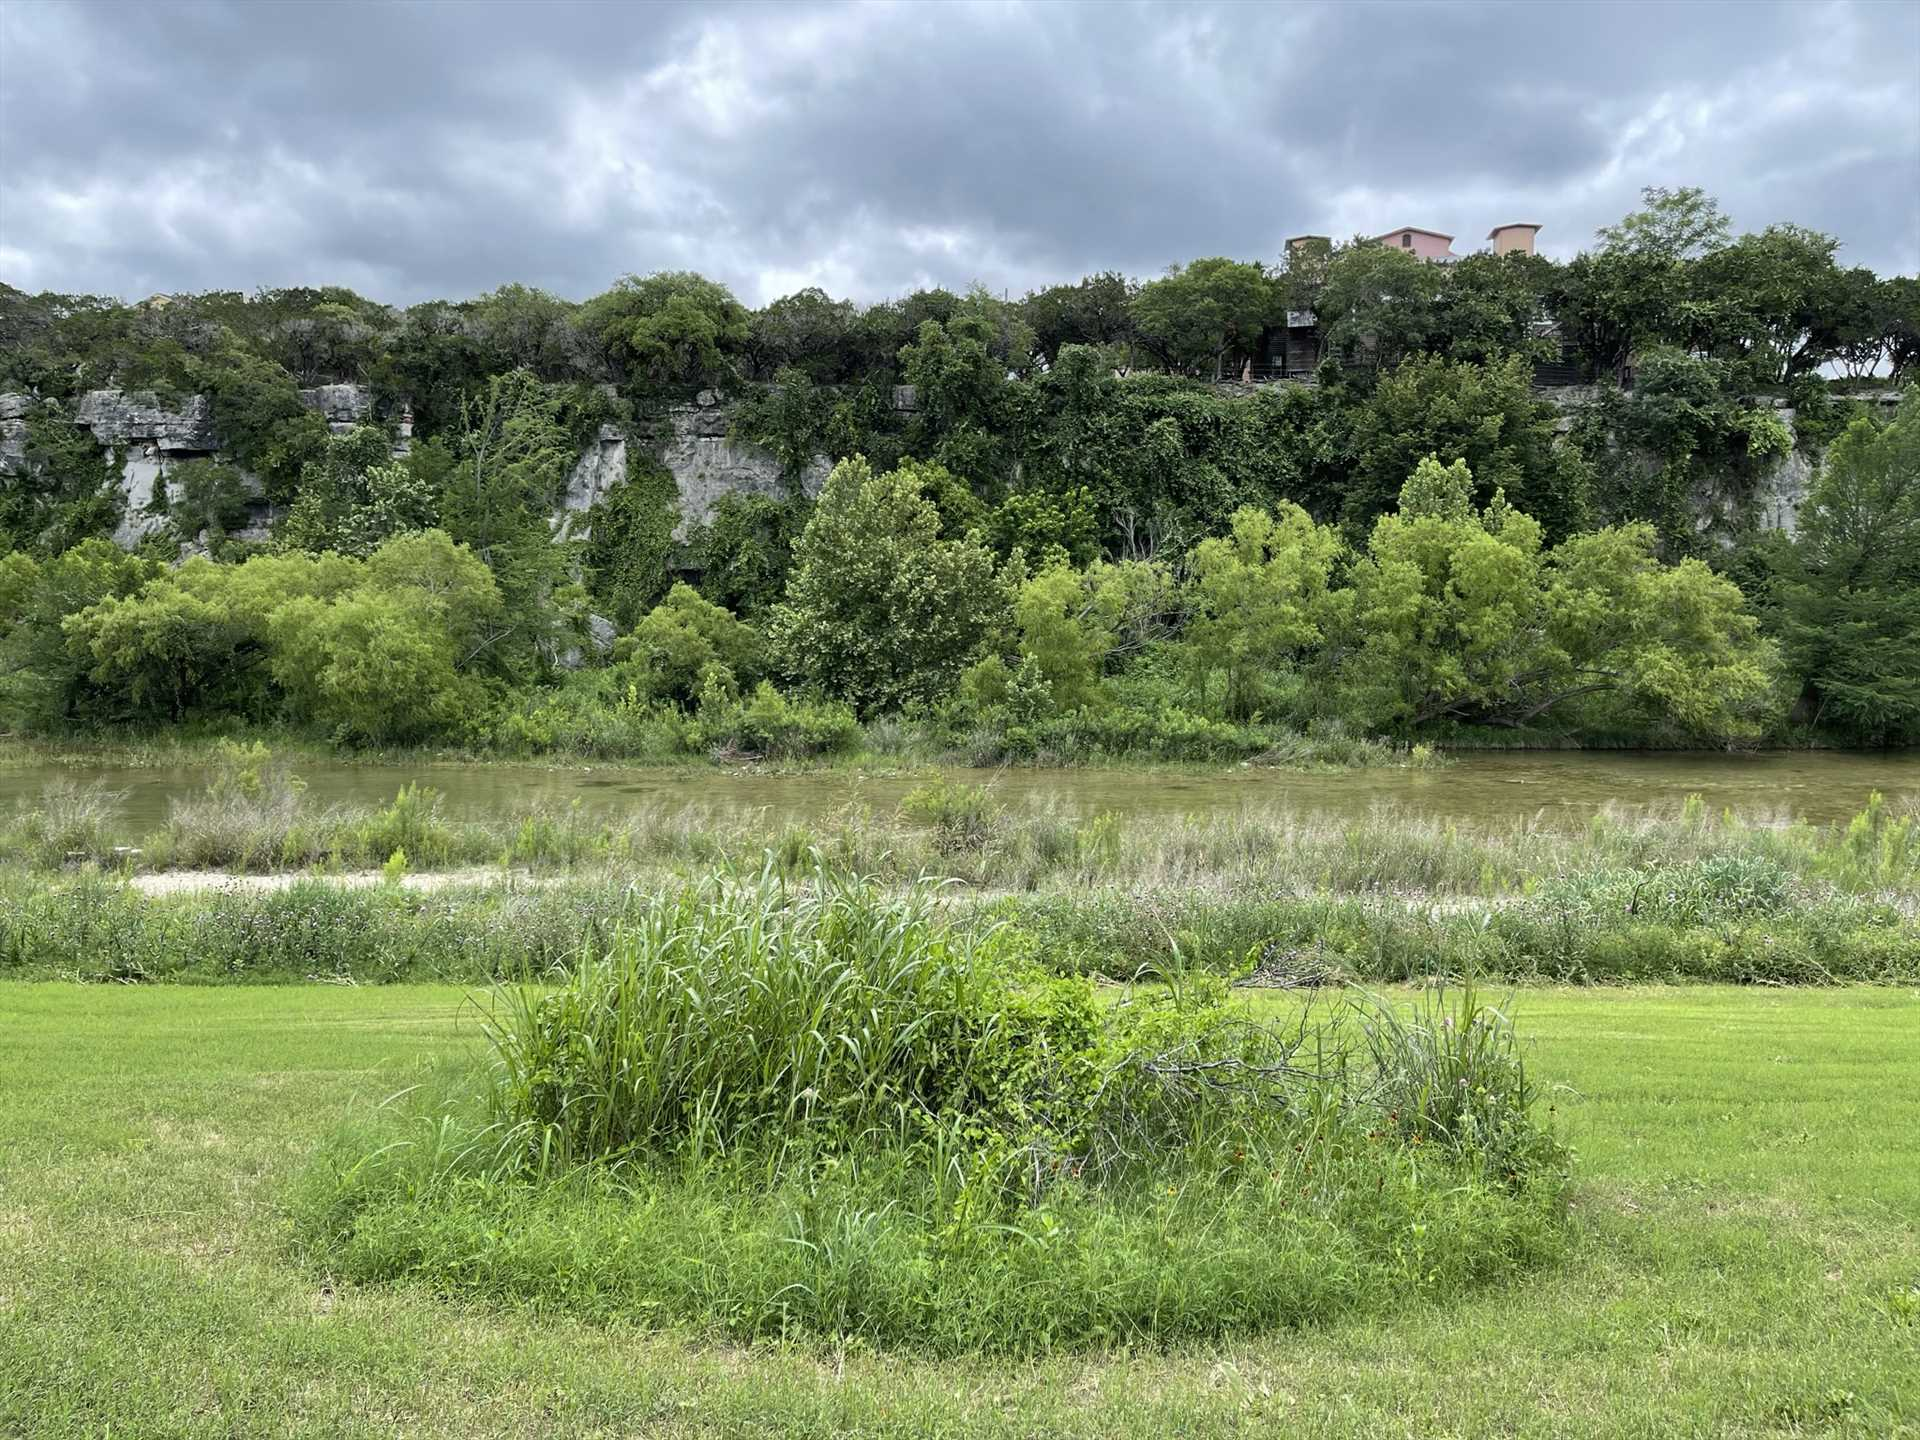 Grab a tube and have yourself a relaxing float through this gorgeous Hill Country beauty!